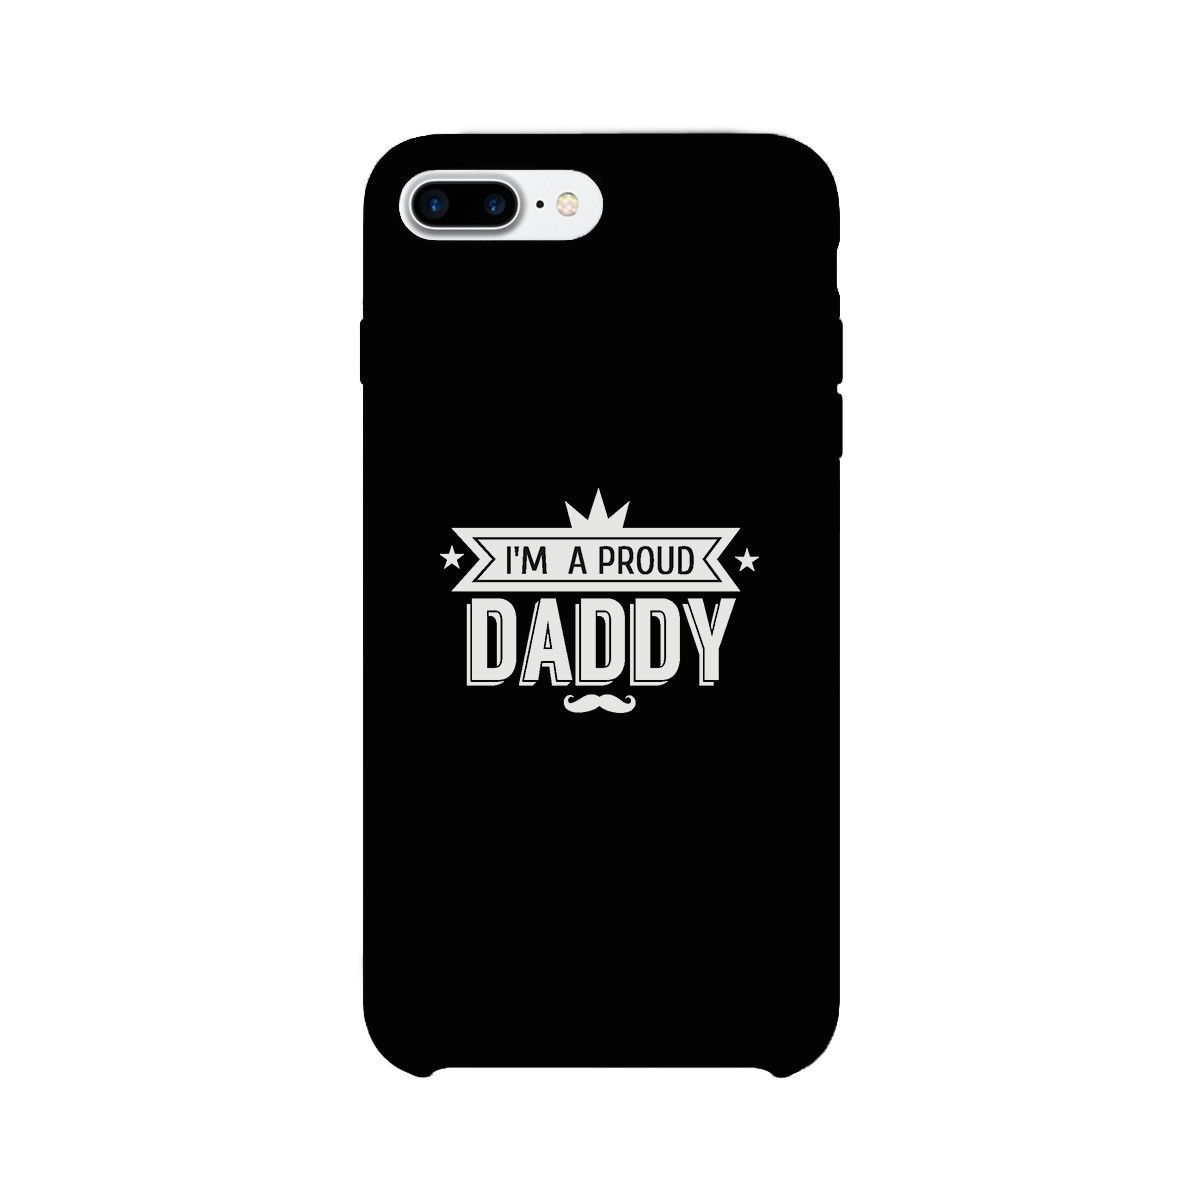 I'm A Proud Daddy Black Phone Case